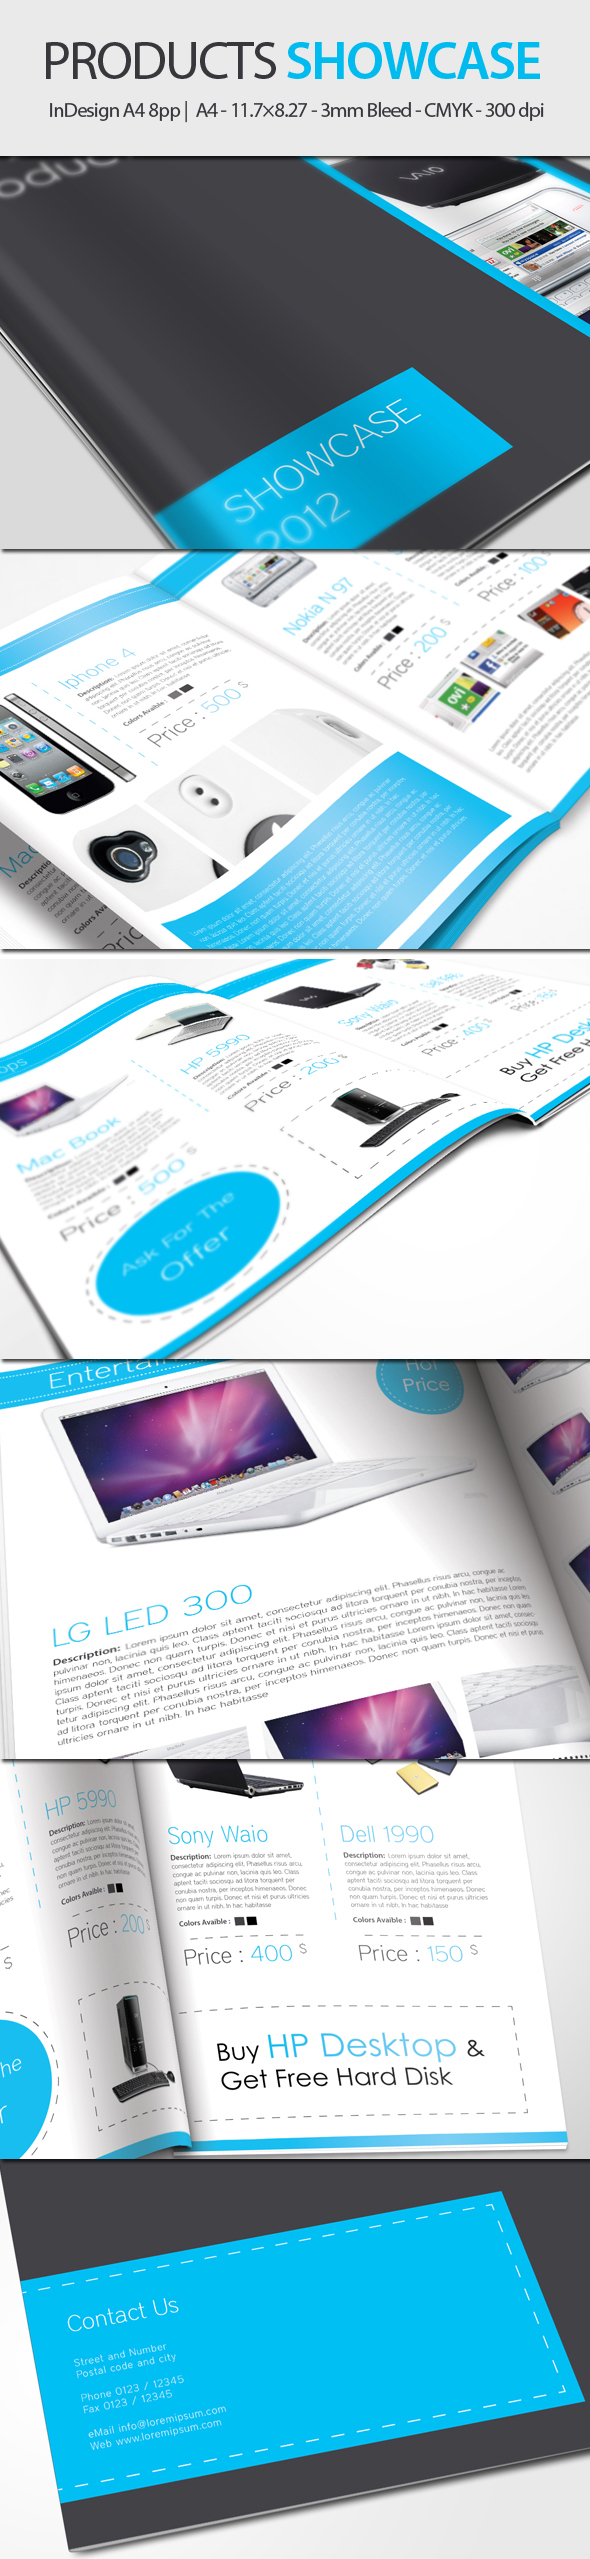 Products Showcase - InDesign A4 8pp by UnicoDesign